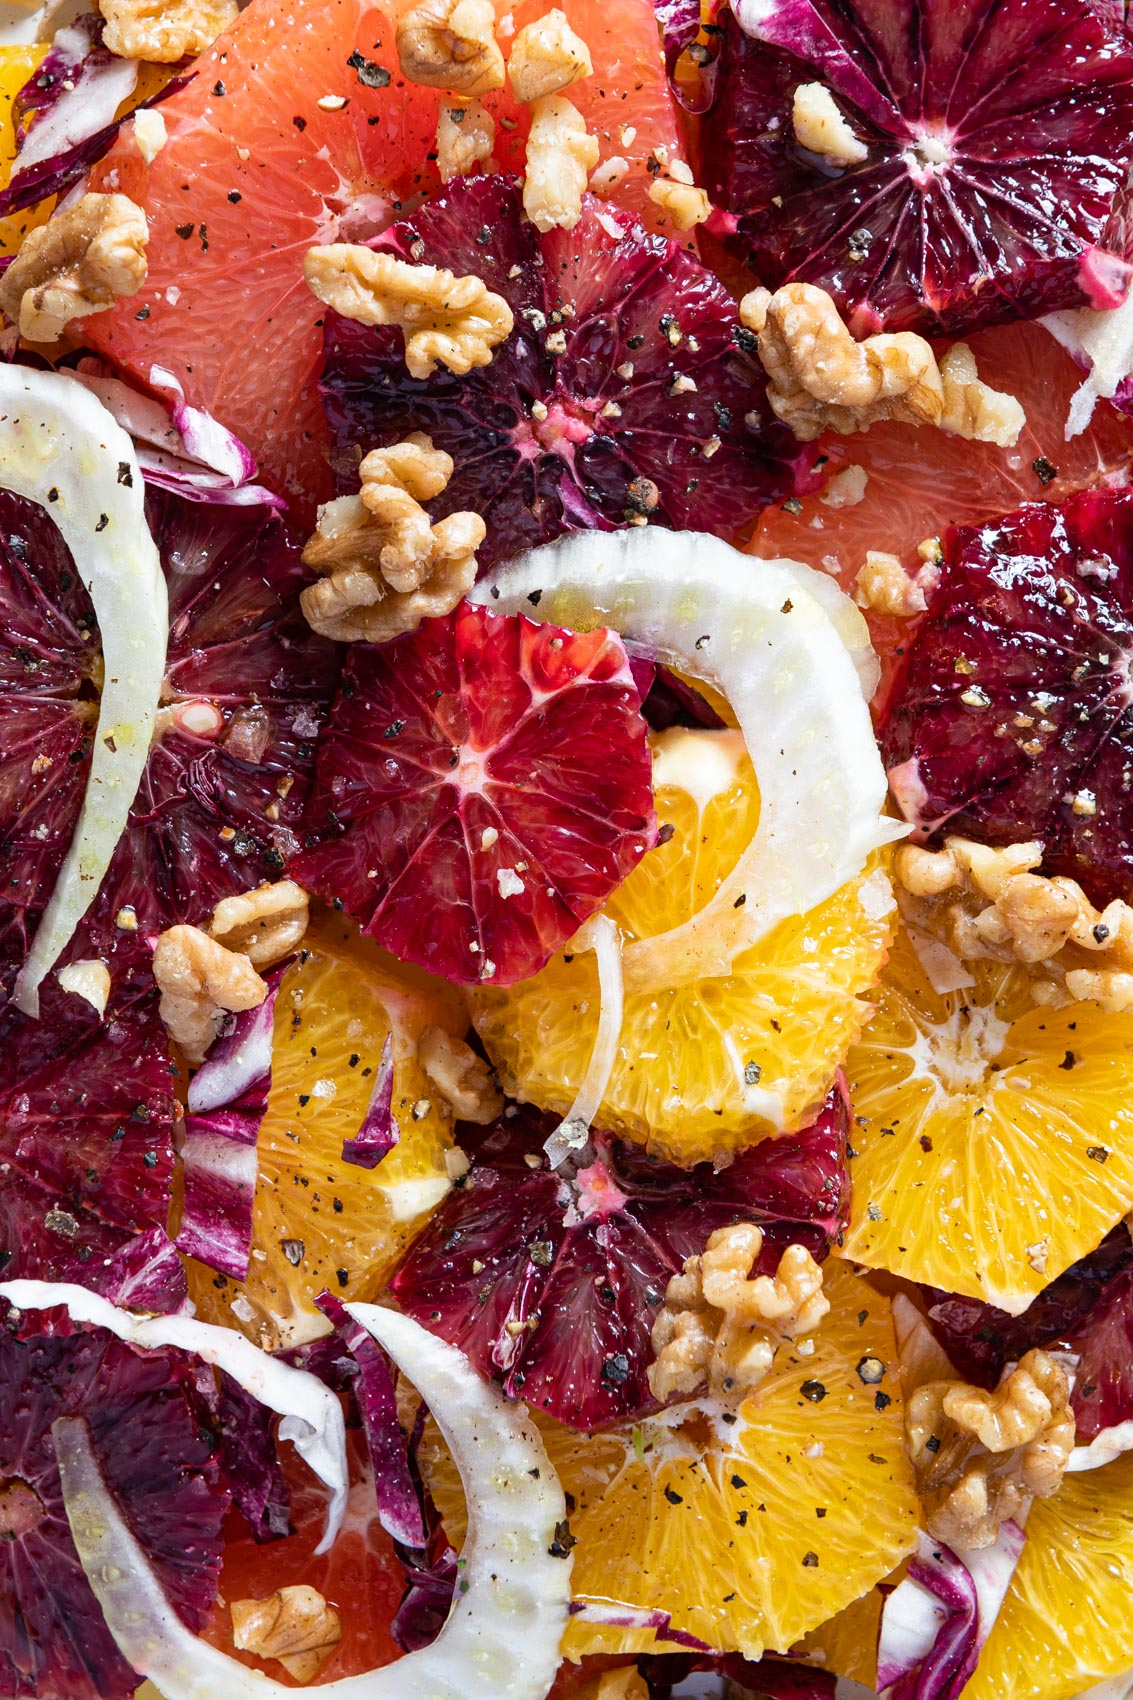 Morgan Ione | NYC Chicago Milwaukee Food Photographer - Winter Citrus Salad